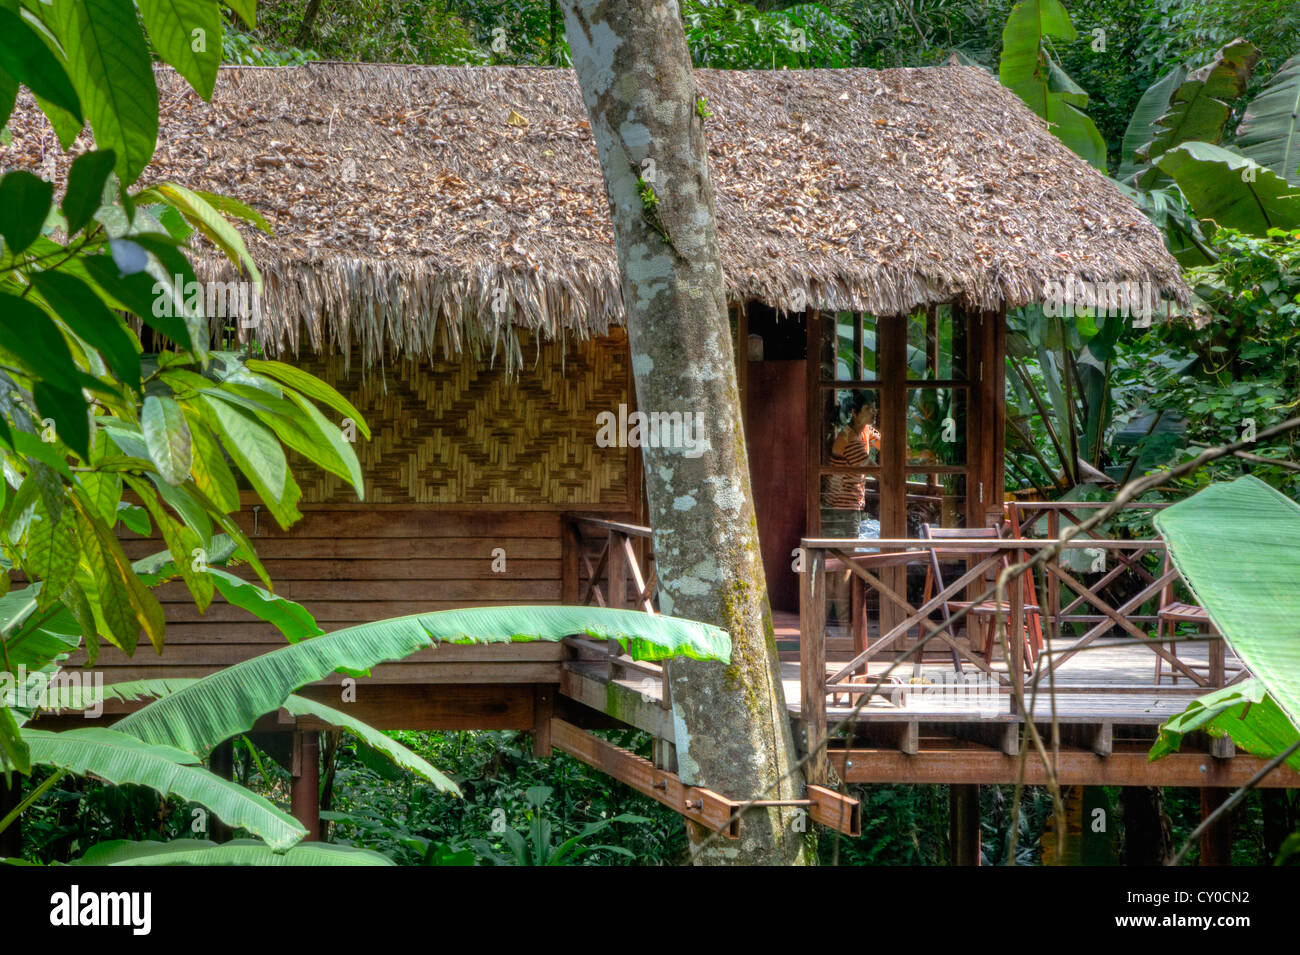 TREE HOUSES are the specialty of OUR JUNGLE HOUSE KHAO SOK ...